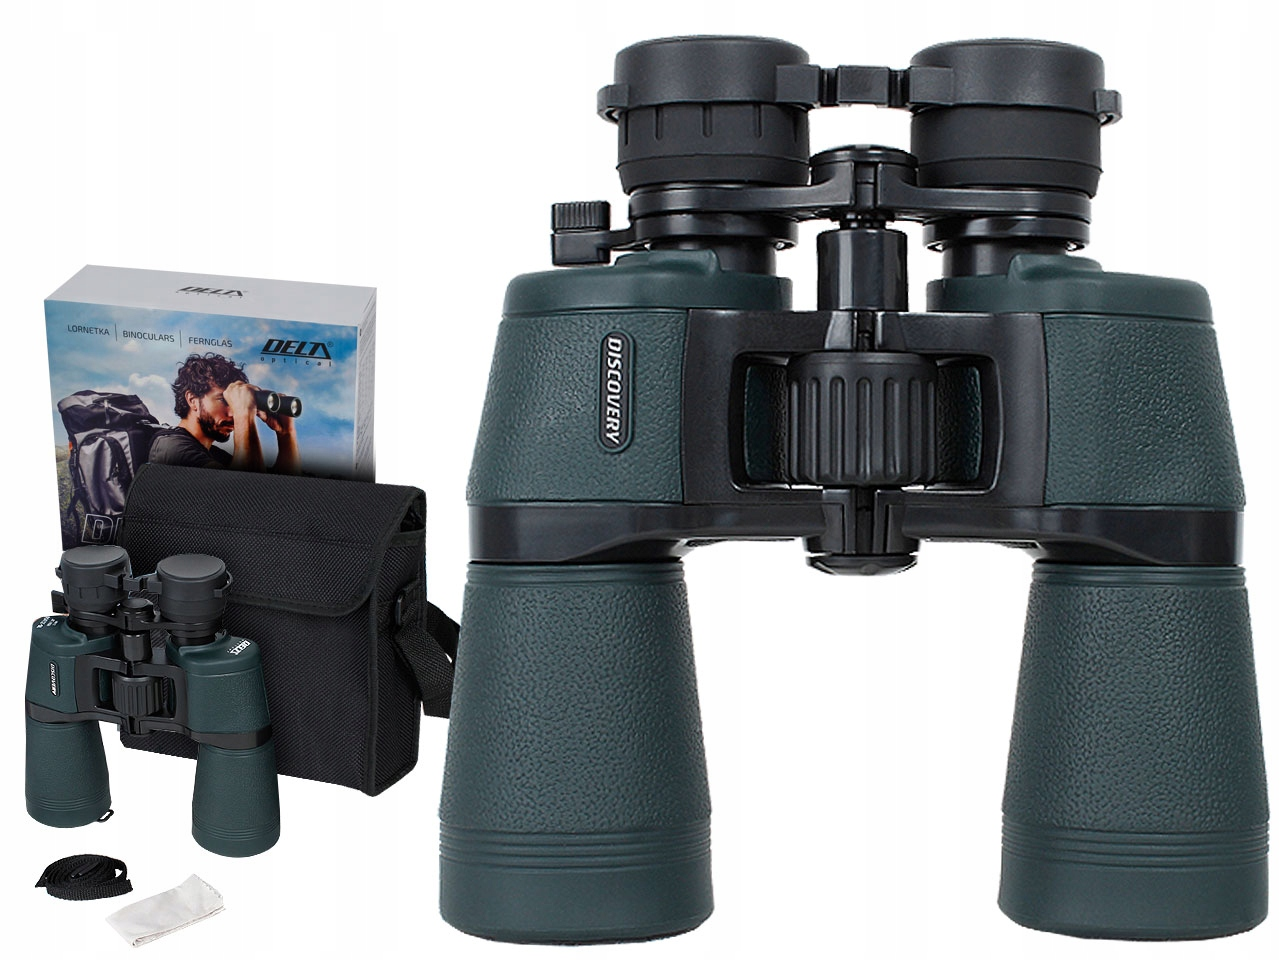 Item Delta Optical DISCOVERY Binoculars 10-22x50 ZOOM